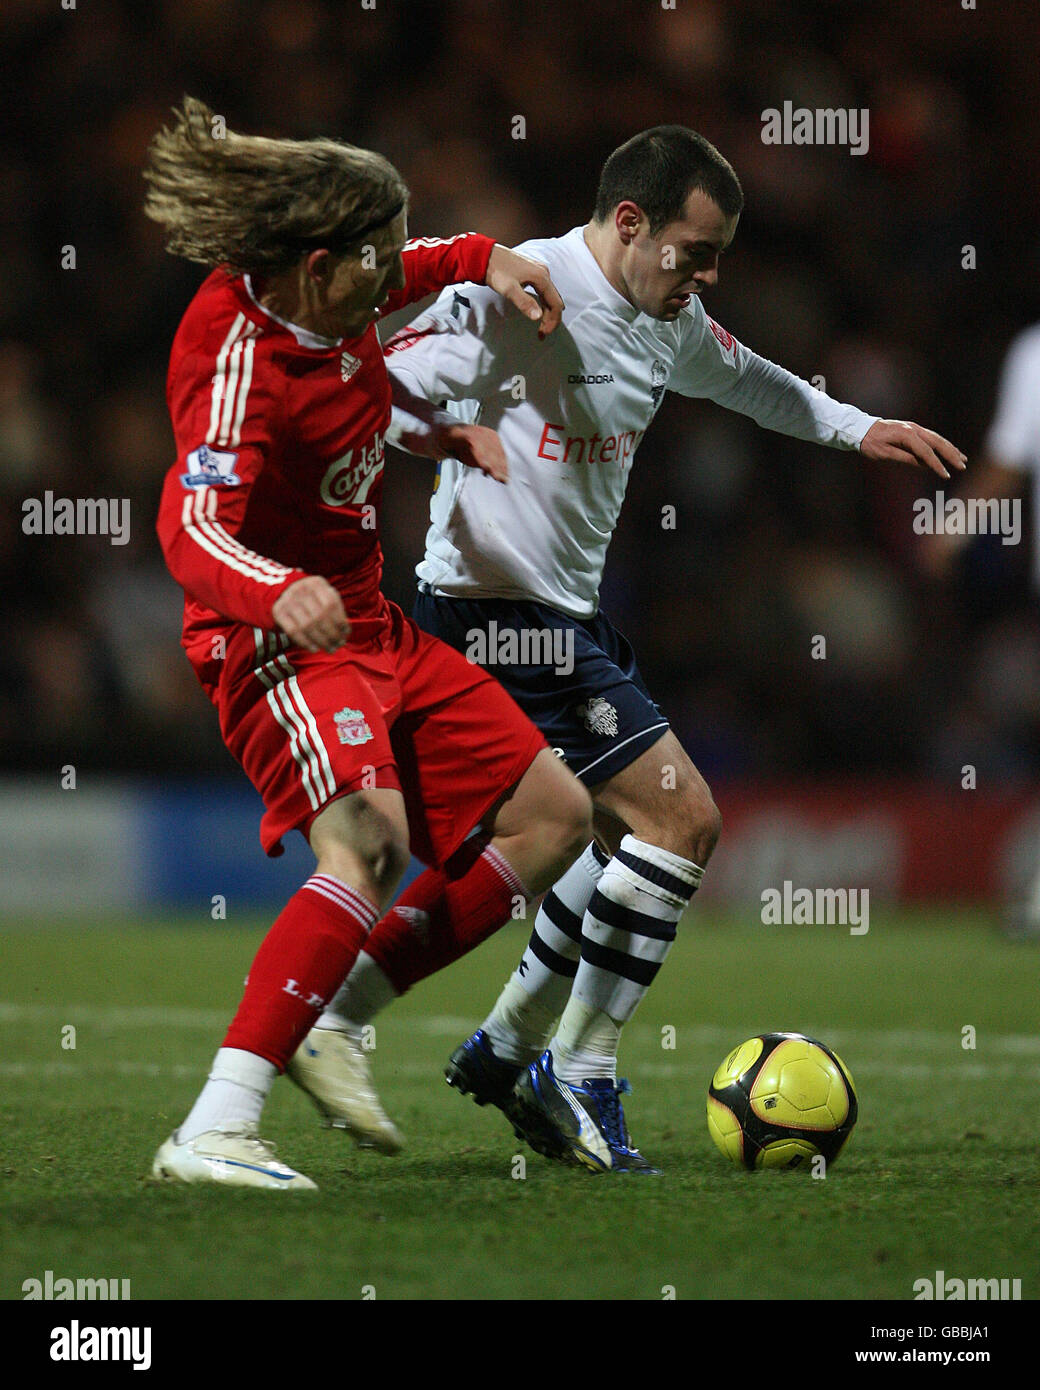 Soccer - FA Cup - Third Round - Preston North End v Liverpool - Deepdale - Stock Image